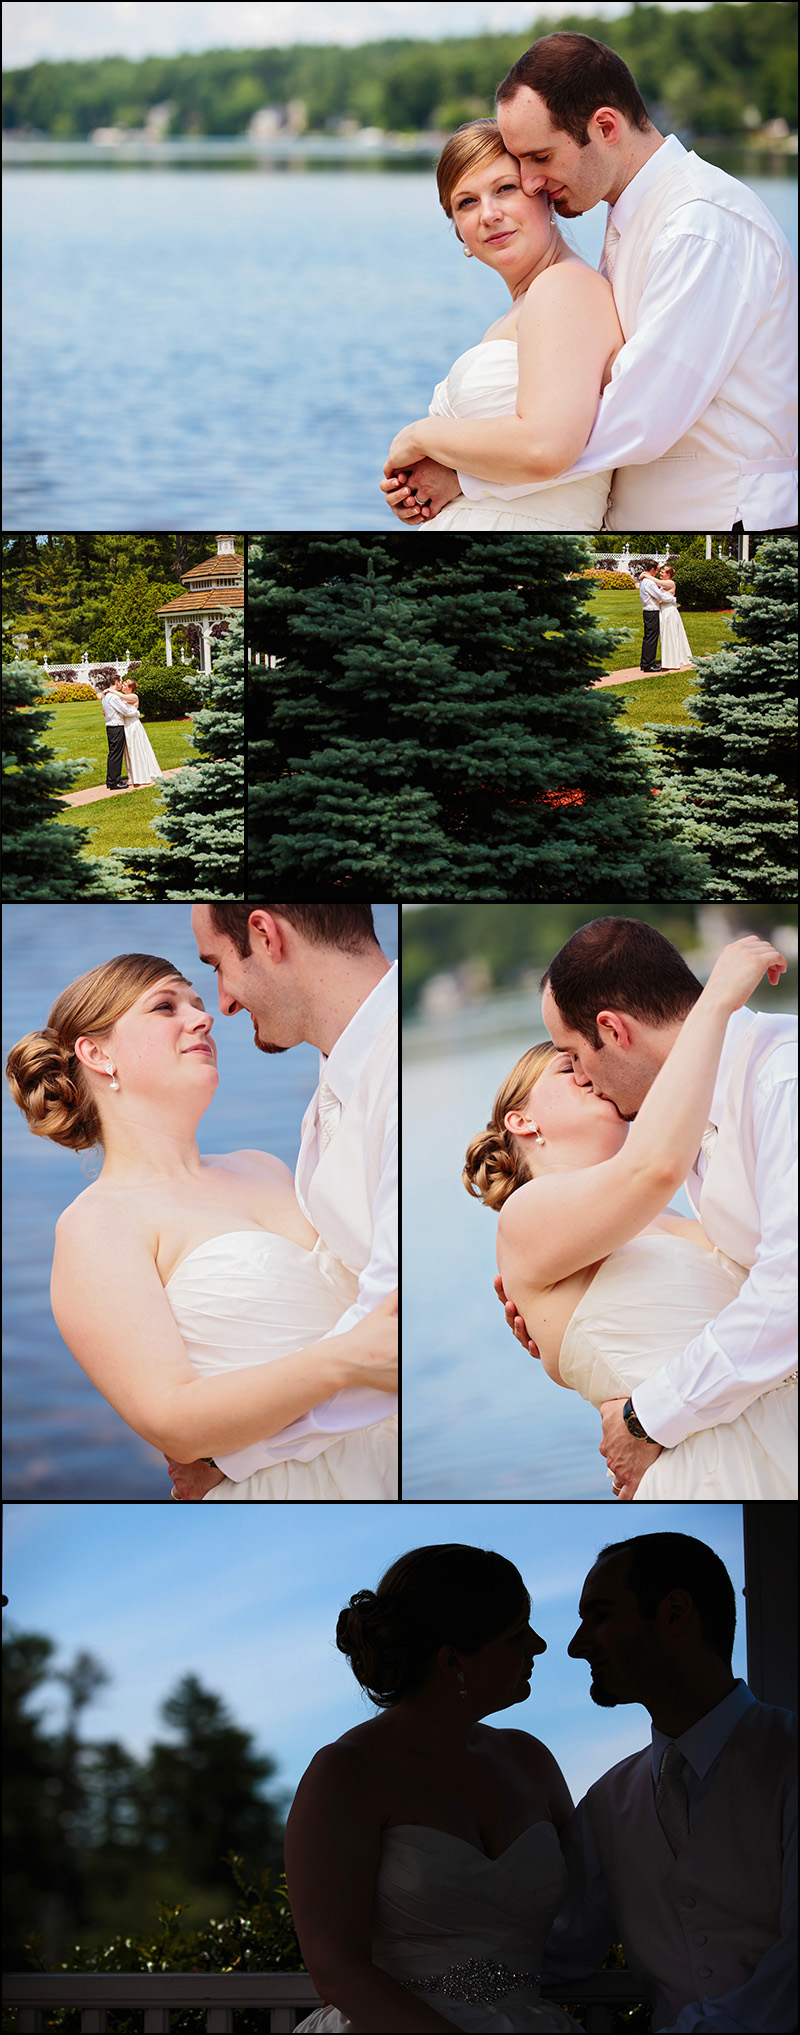 WEDDING PHOTOS AT CASTLETON IN WINDHAM NH